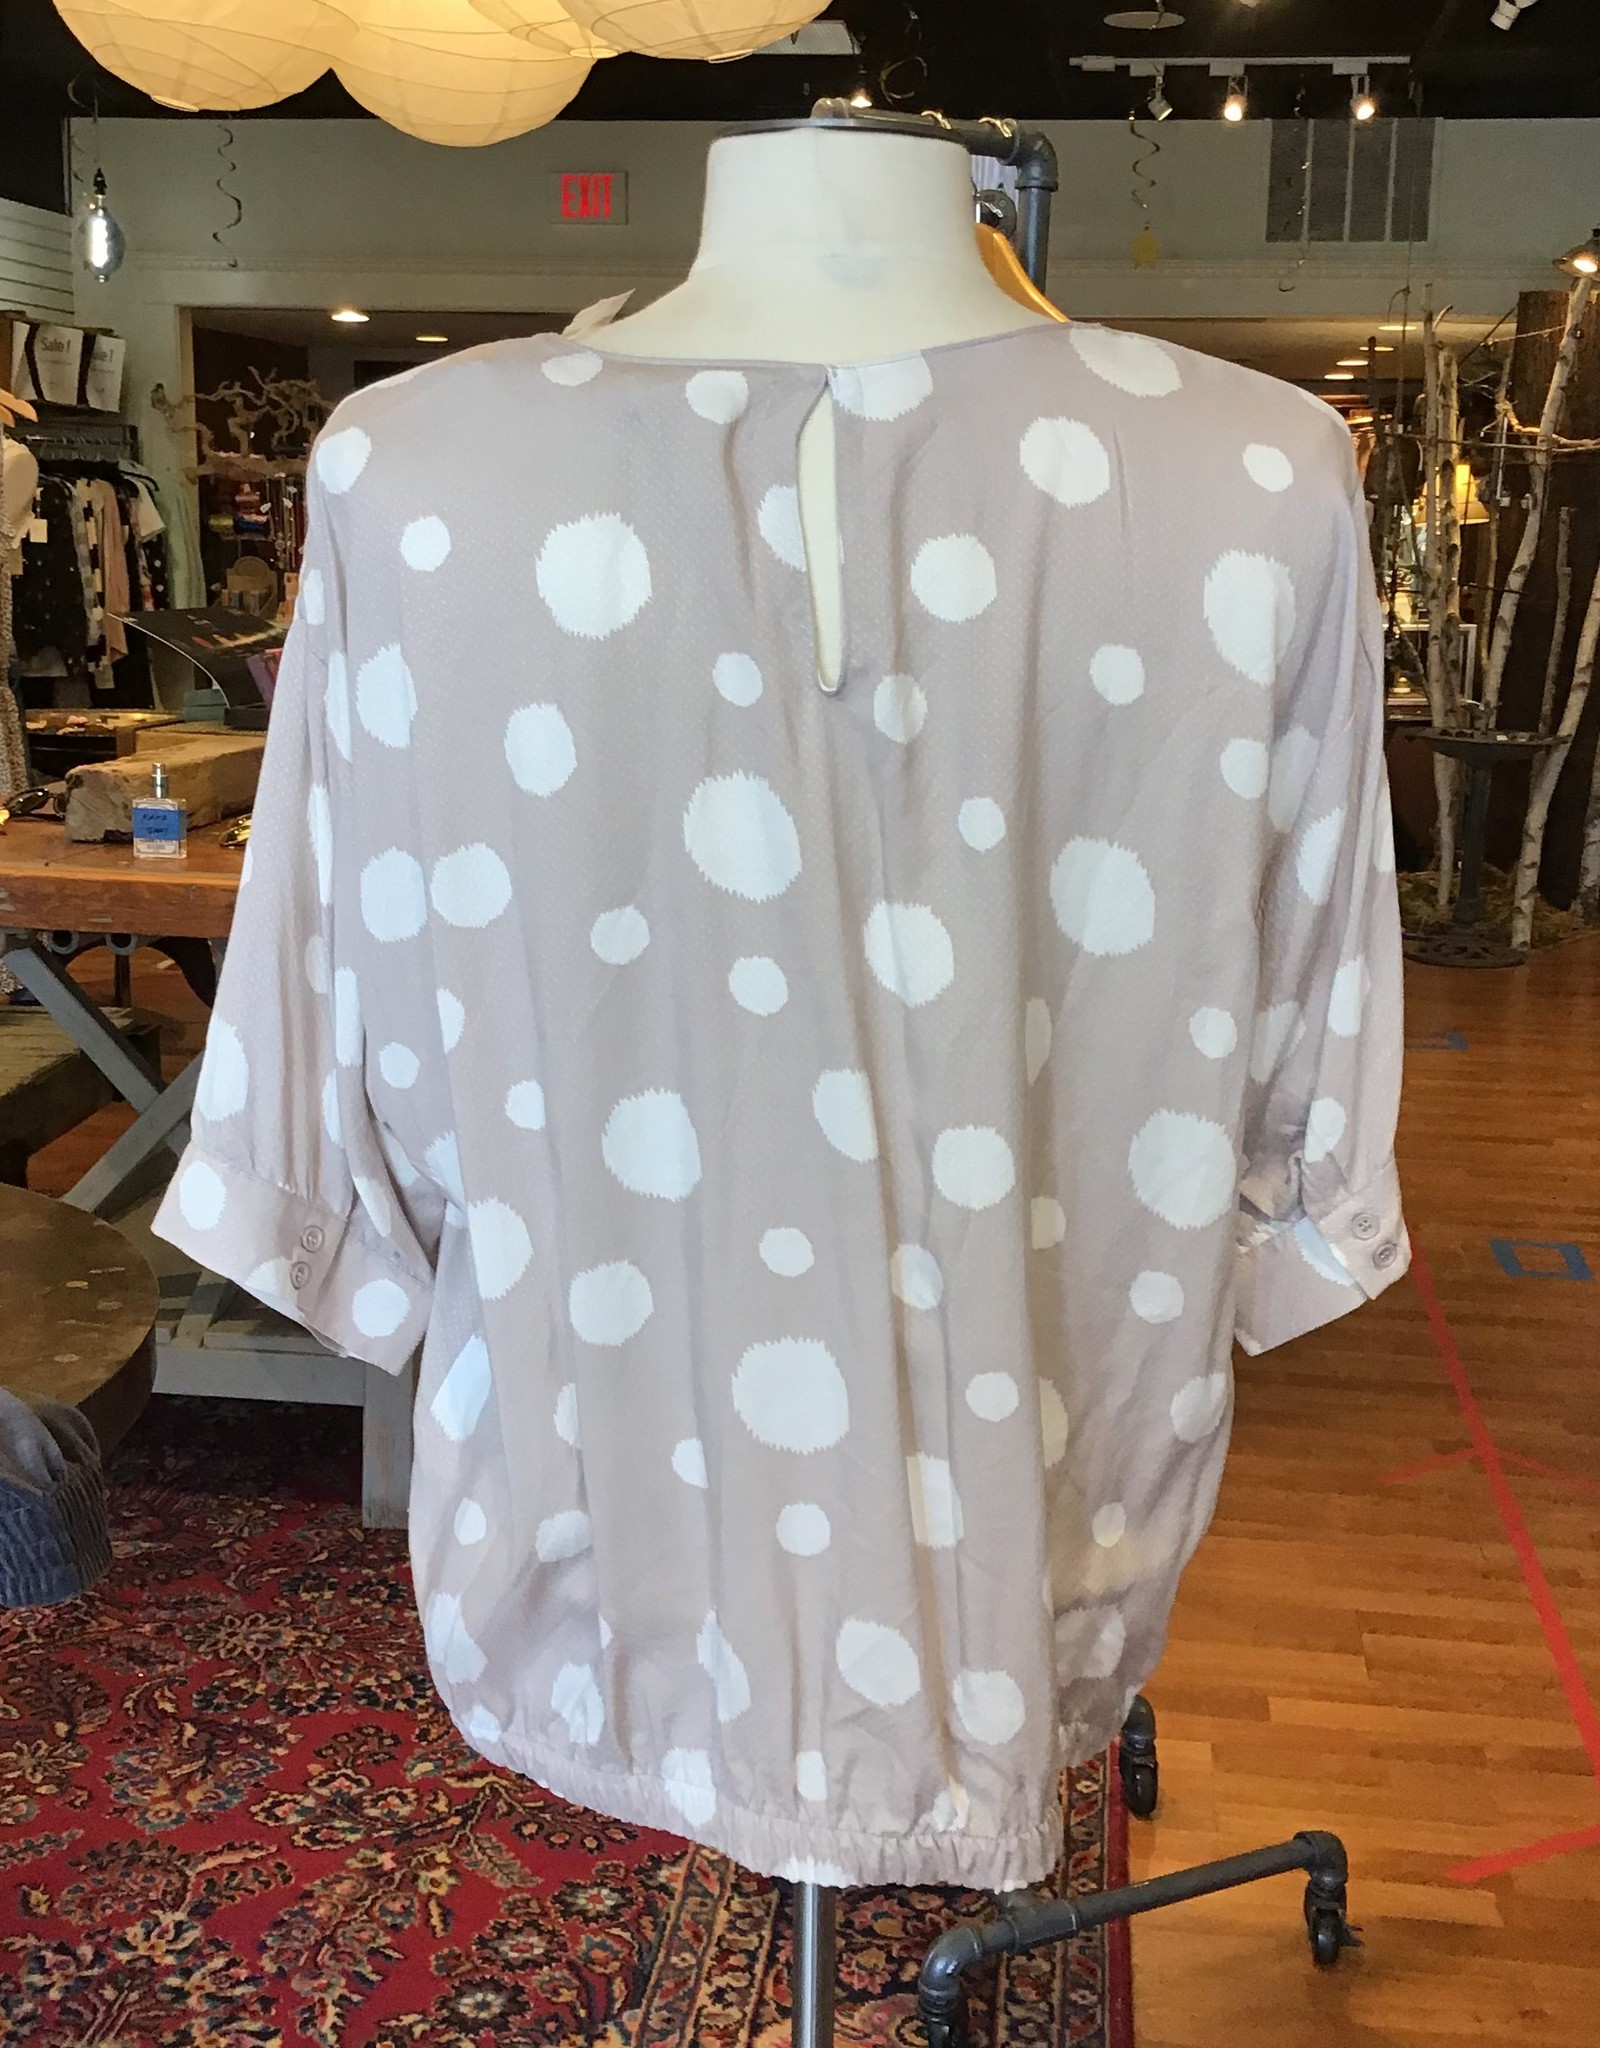 Melloday Melloday Elbow Sleeve Tie Hem Blouse Sz L